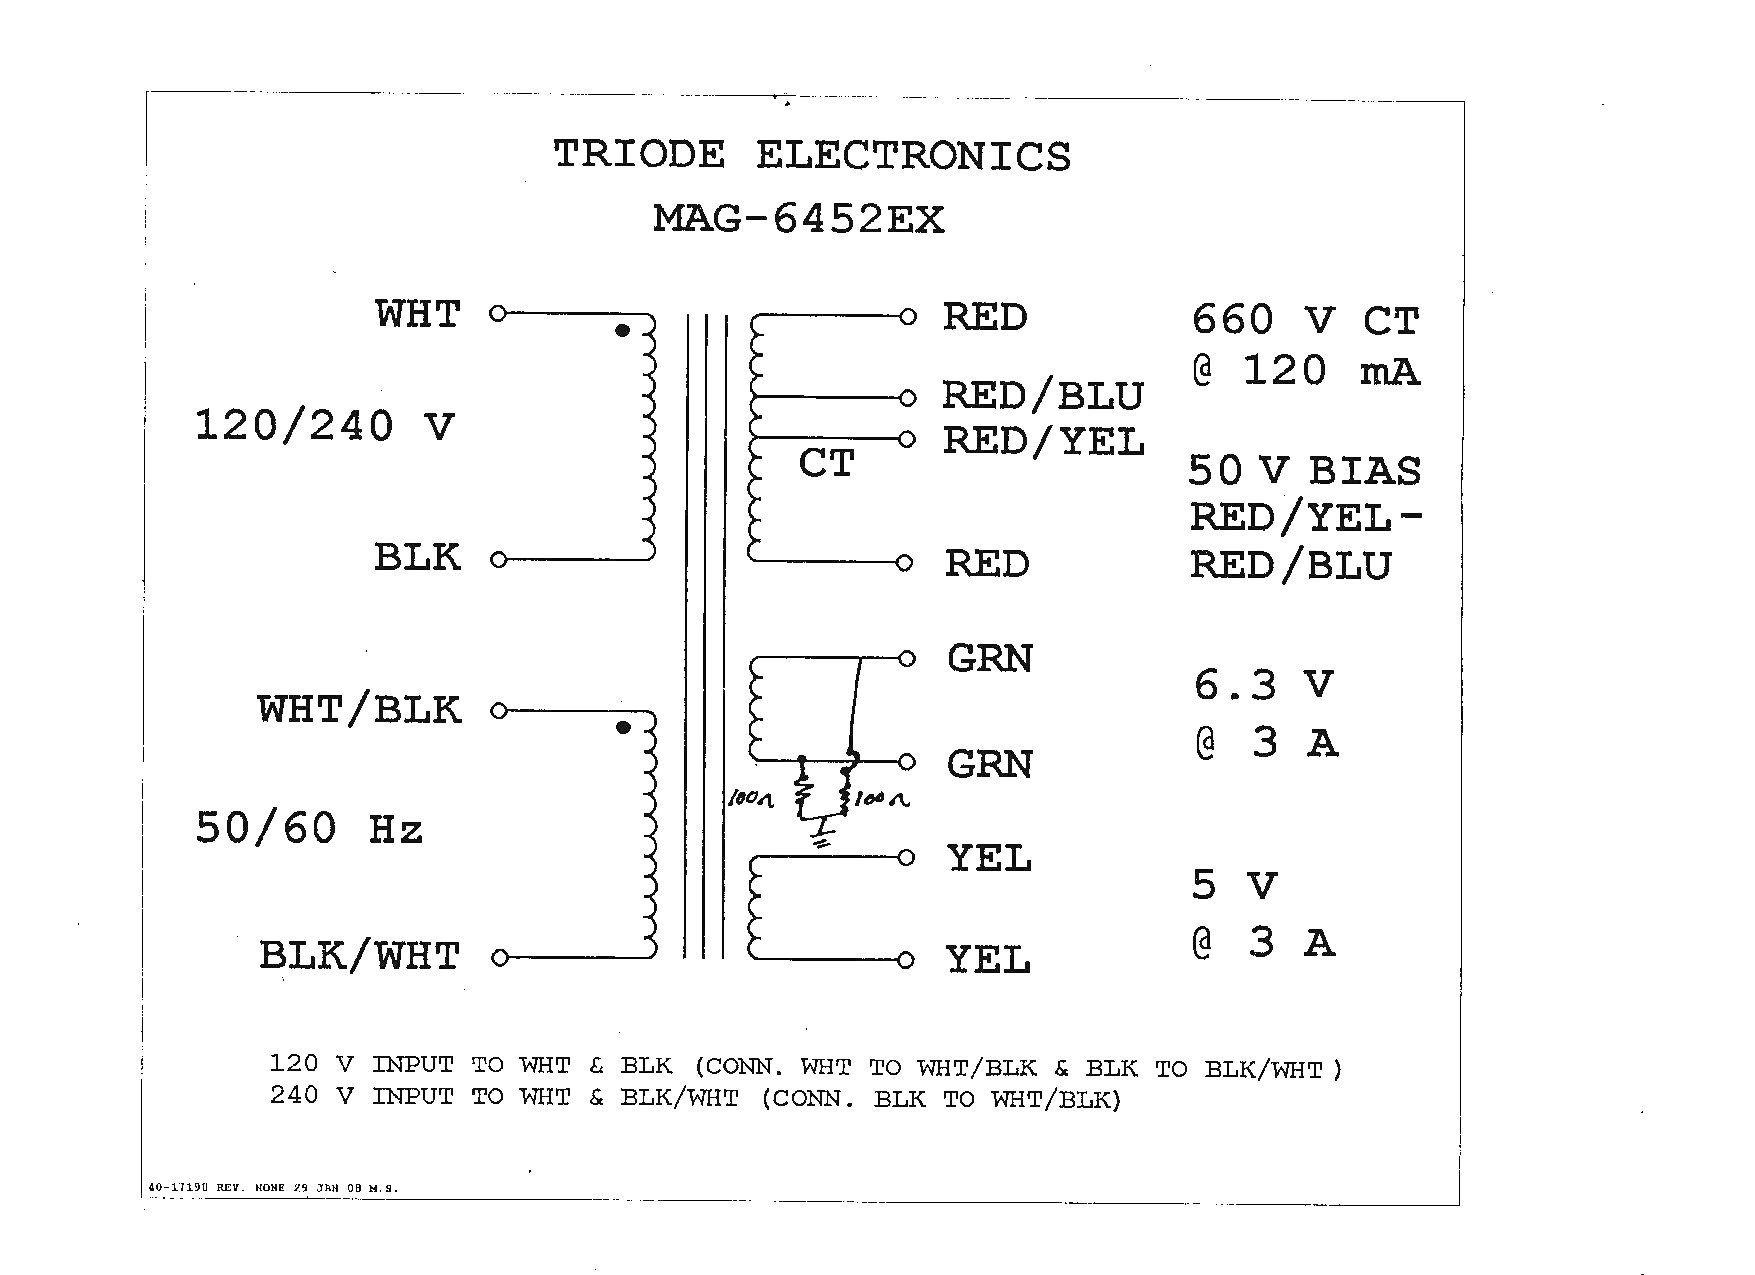 buck and boost transformer wiring diagram Download-3 Phase Buck Boost Transformer Wiring Diagram Popular Acme Transformers Wiring Diagrams Acme Transformer Wiring Diagrams 5-r